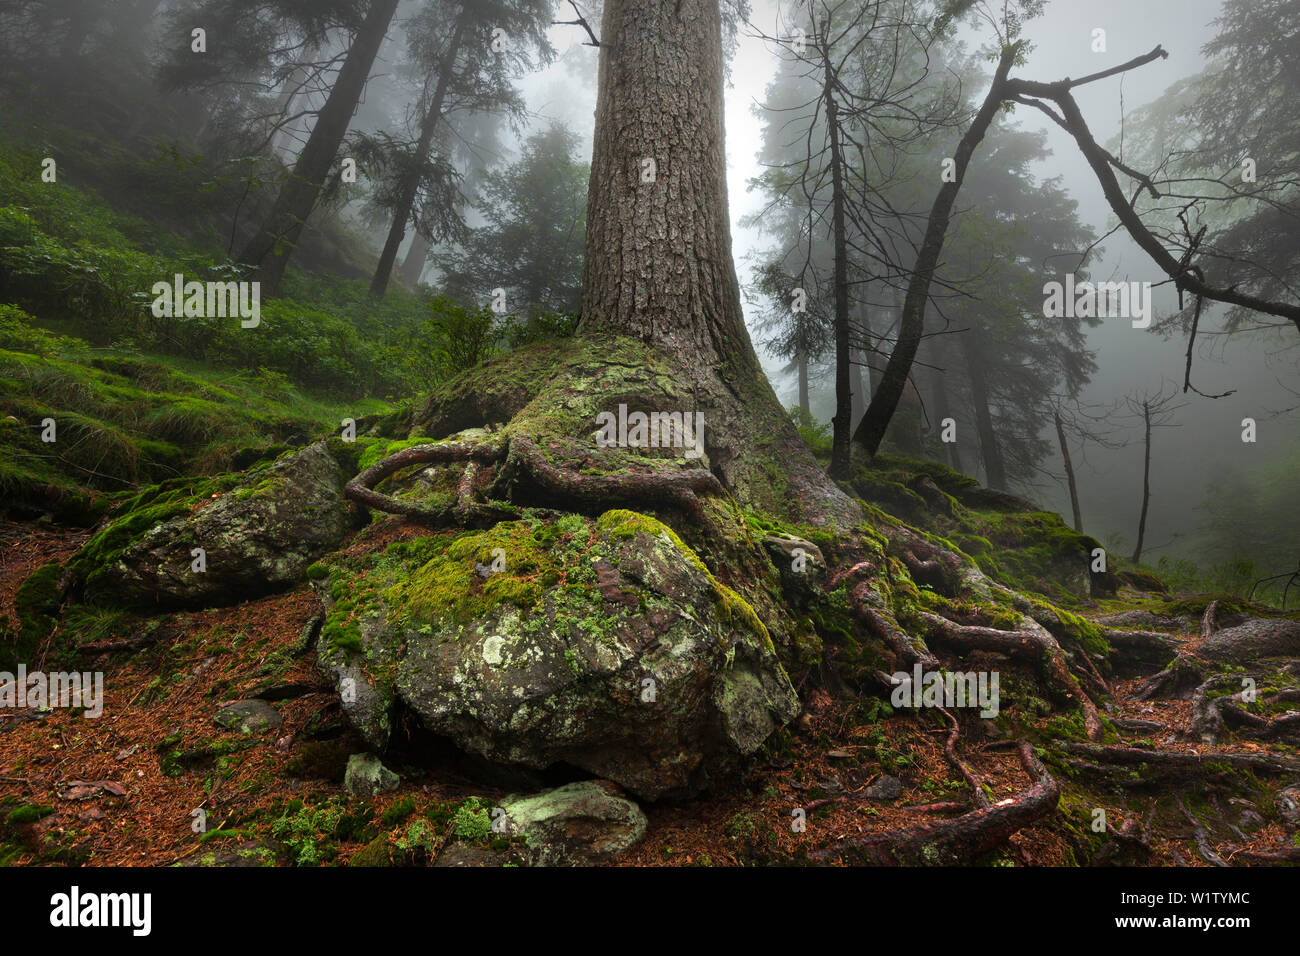 Roots of a spruce, hiking path to Grosser Falkenstein, Bavarian Forest, Bavaria, Germany - Stock Image